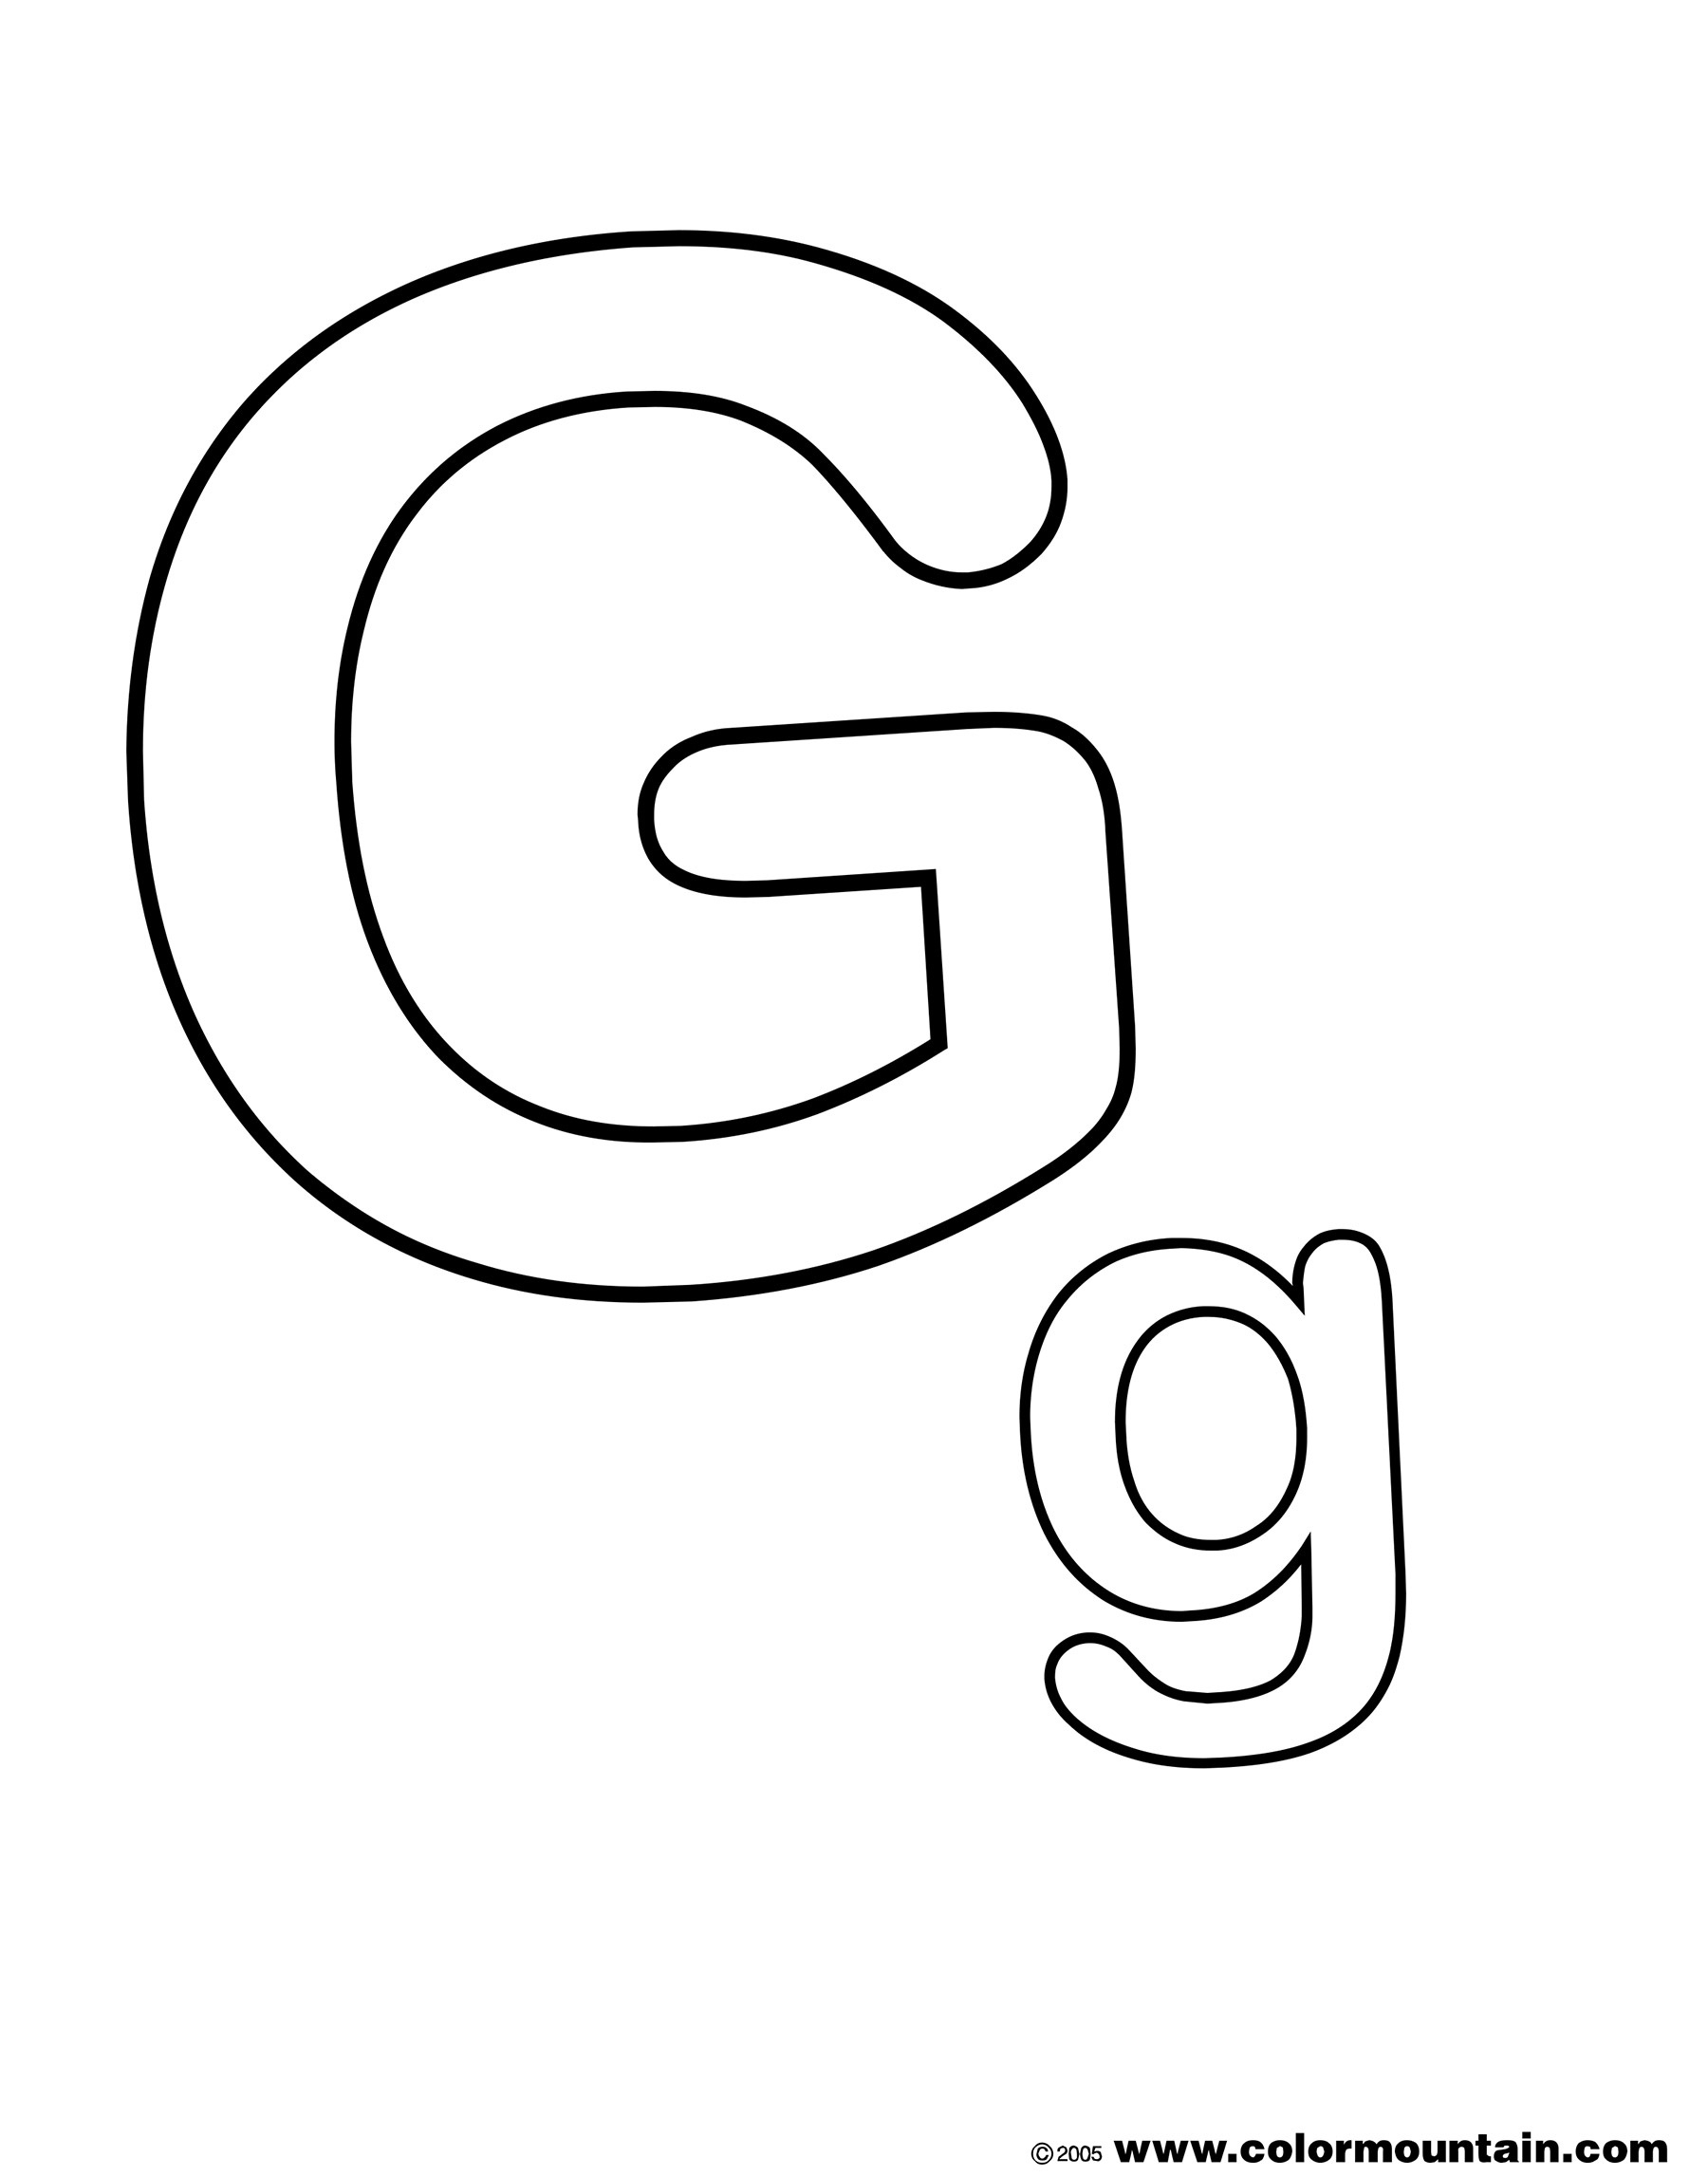 The Letter G Coloring Page - Create A Printout Or Activity - Free Printable Letter G Coloring Pages